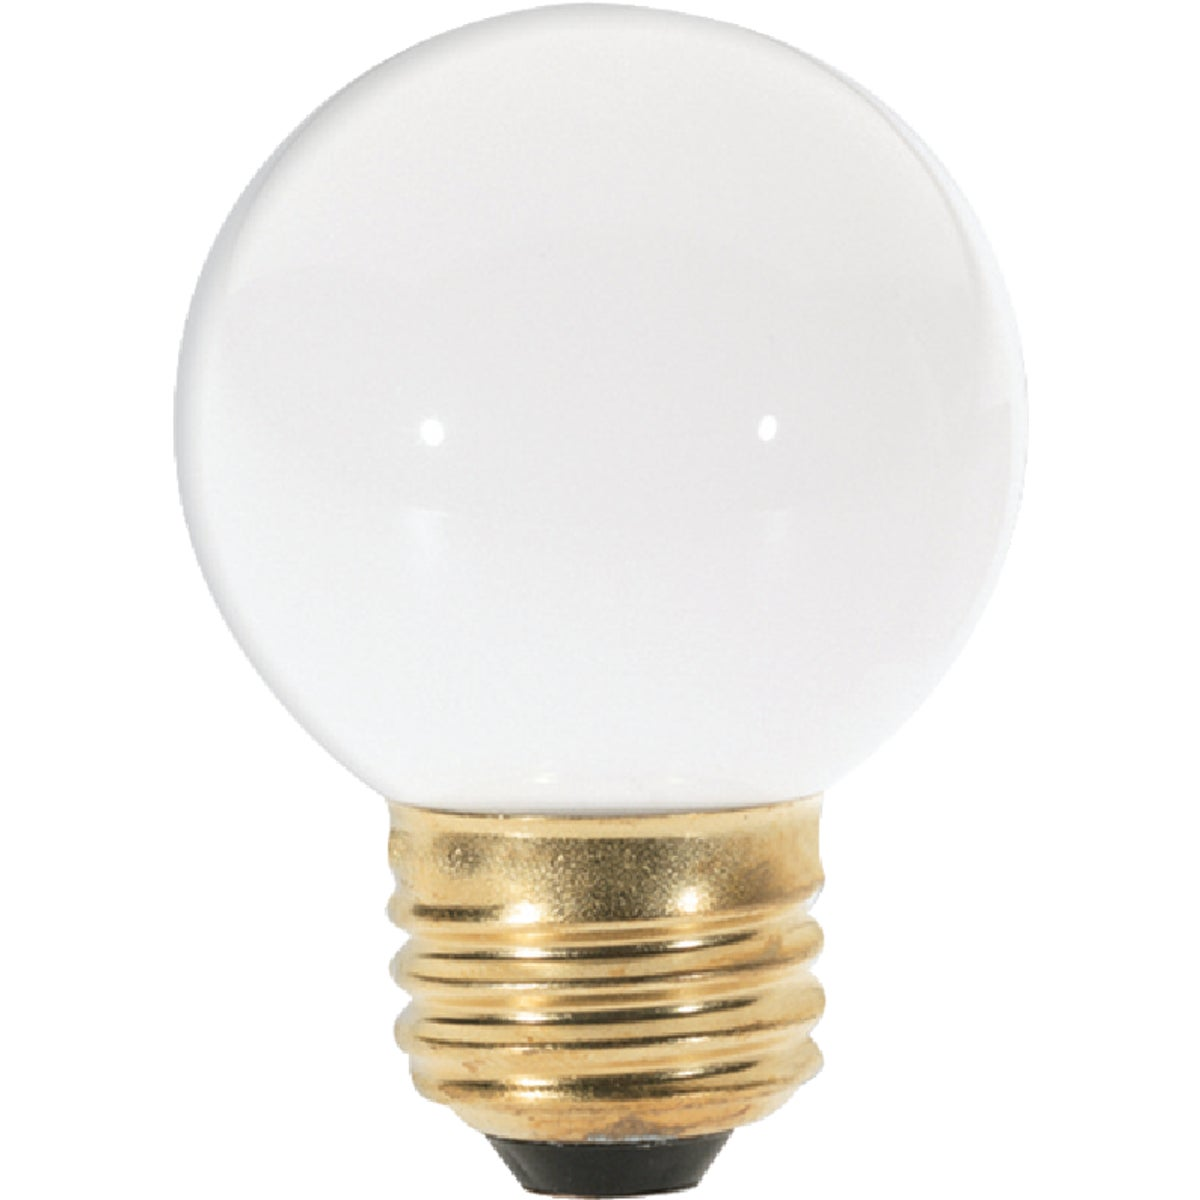 25W WHITE GLOBE BULB - 31107 25GM/W by G E Lighting